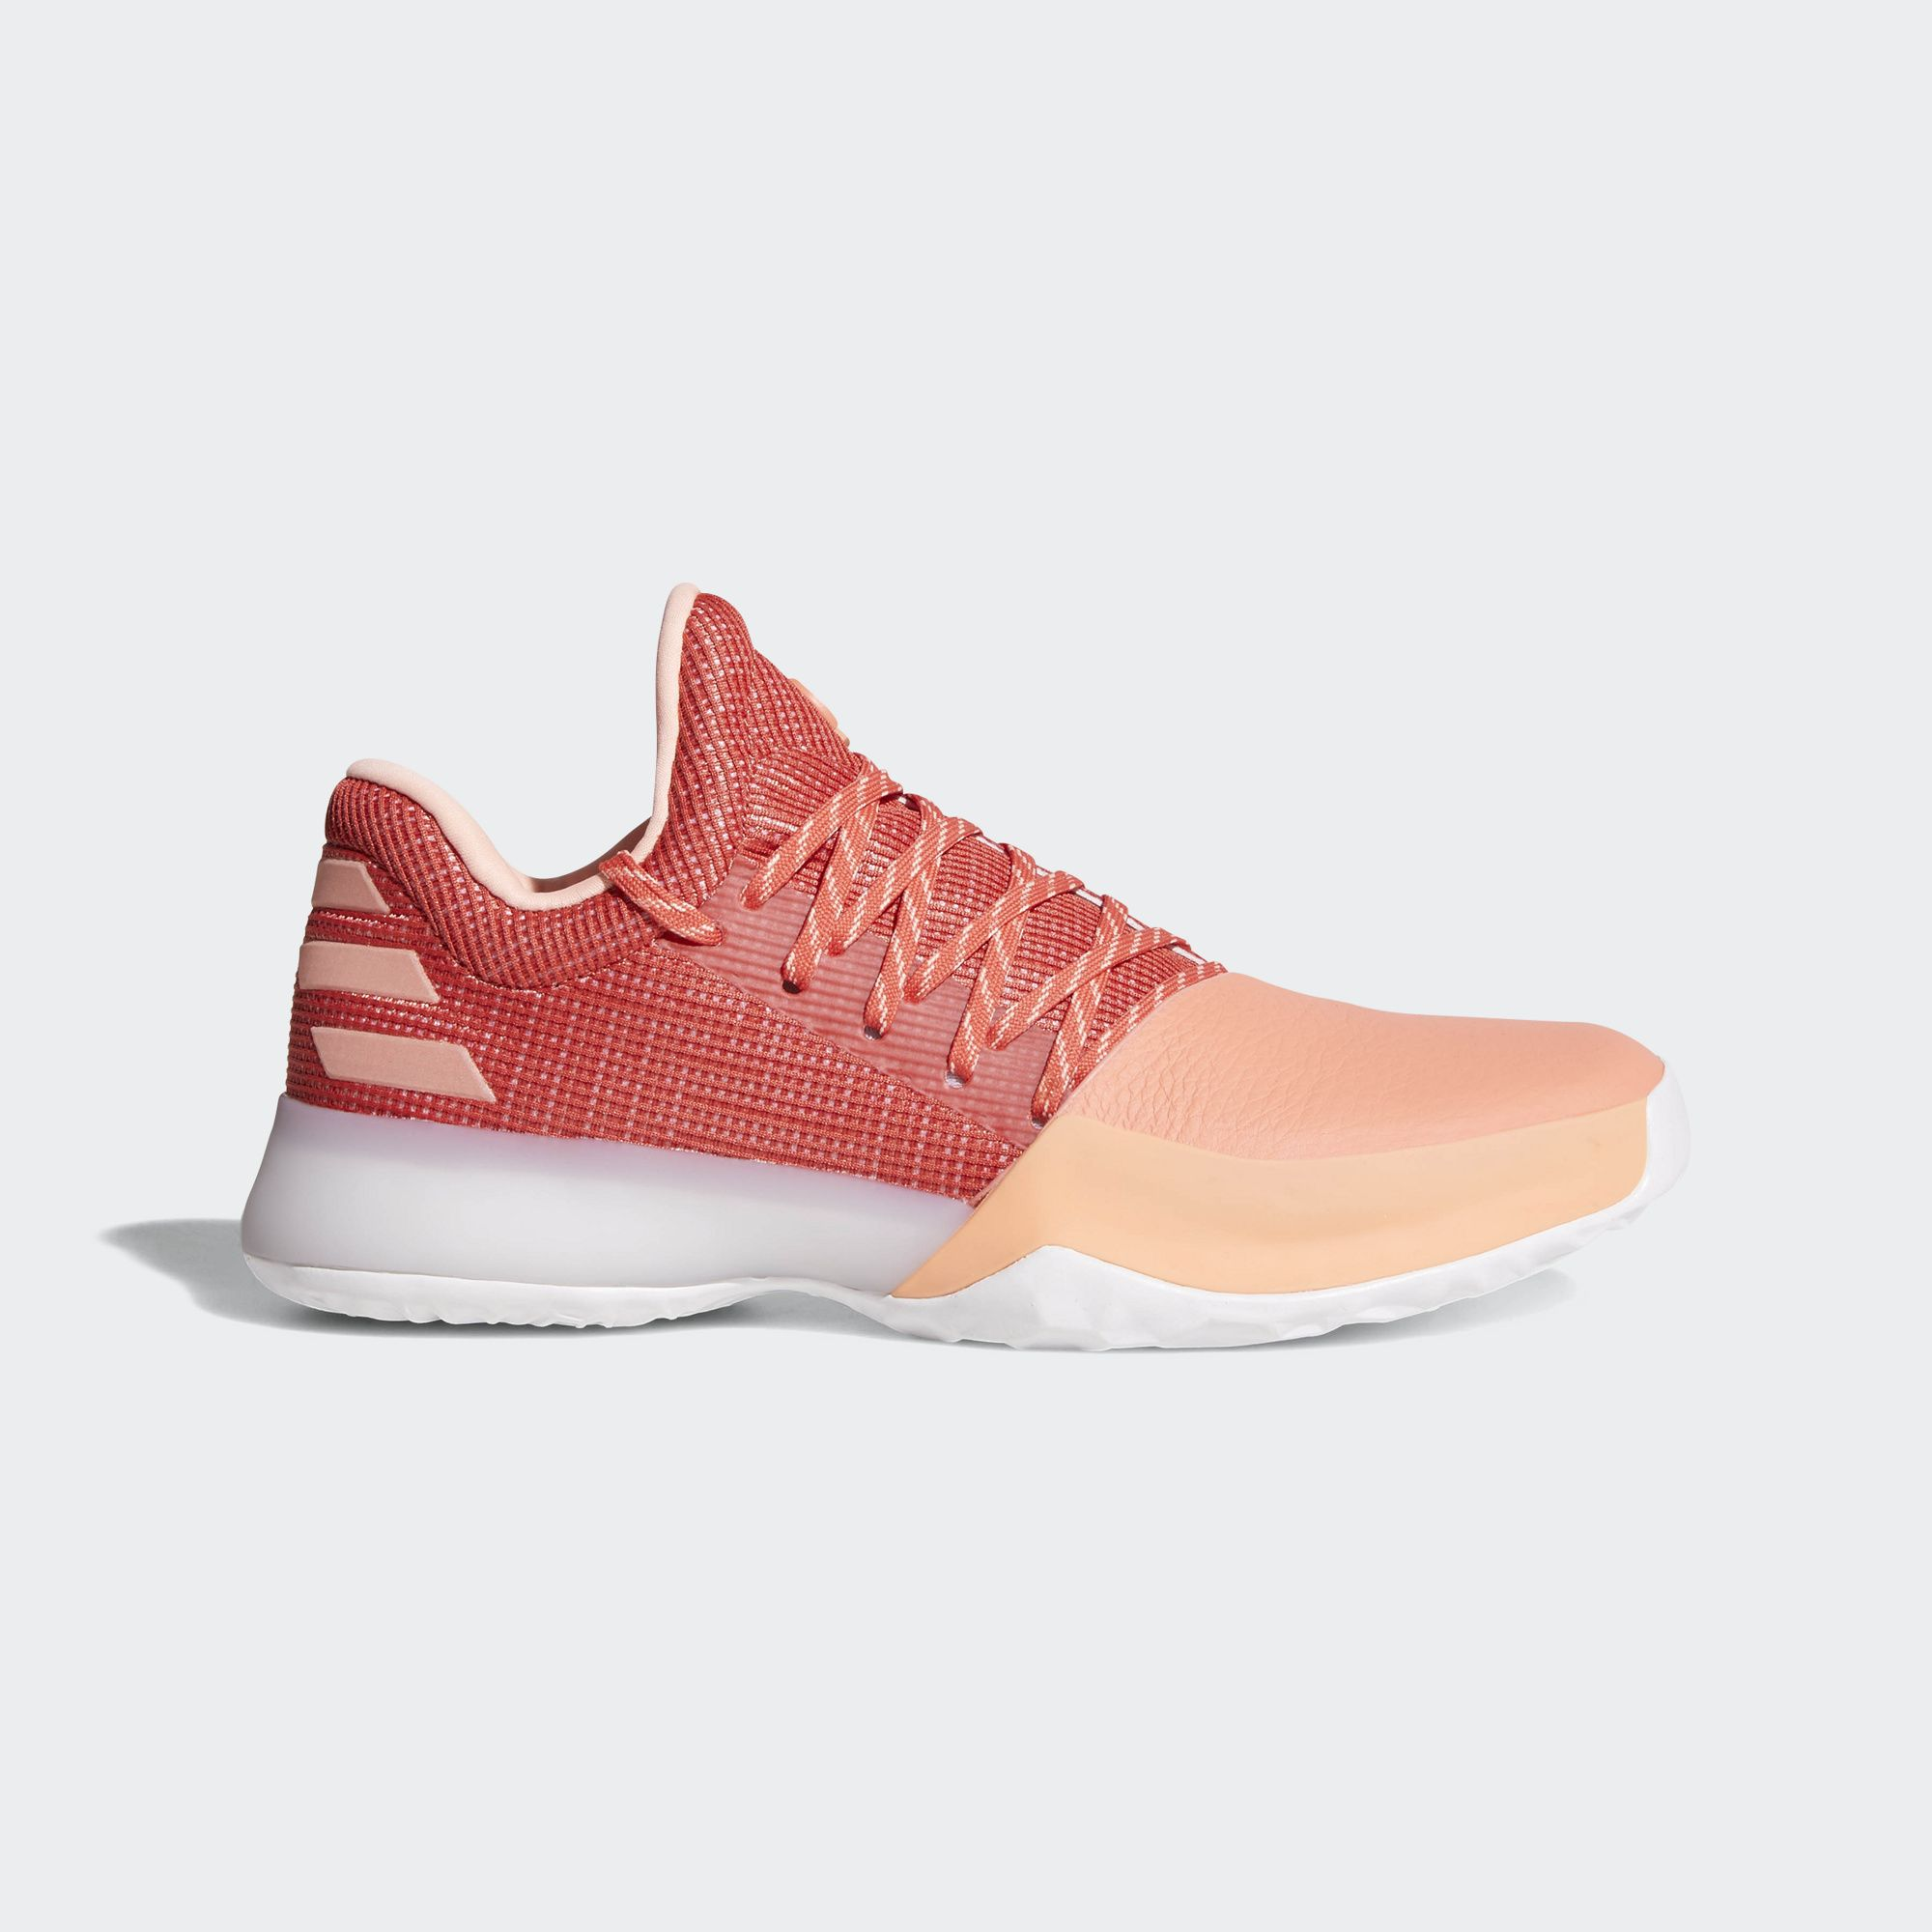 save off 9d6d1 148d1 ... real adidas harden vol 1 pink 1 3c36a f6c11